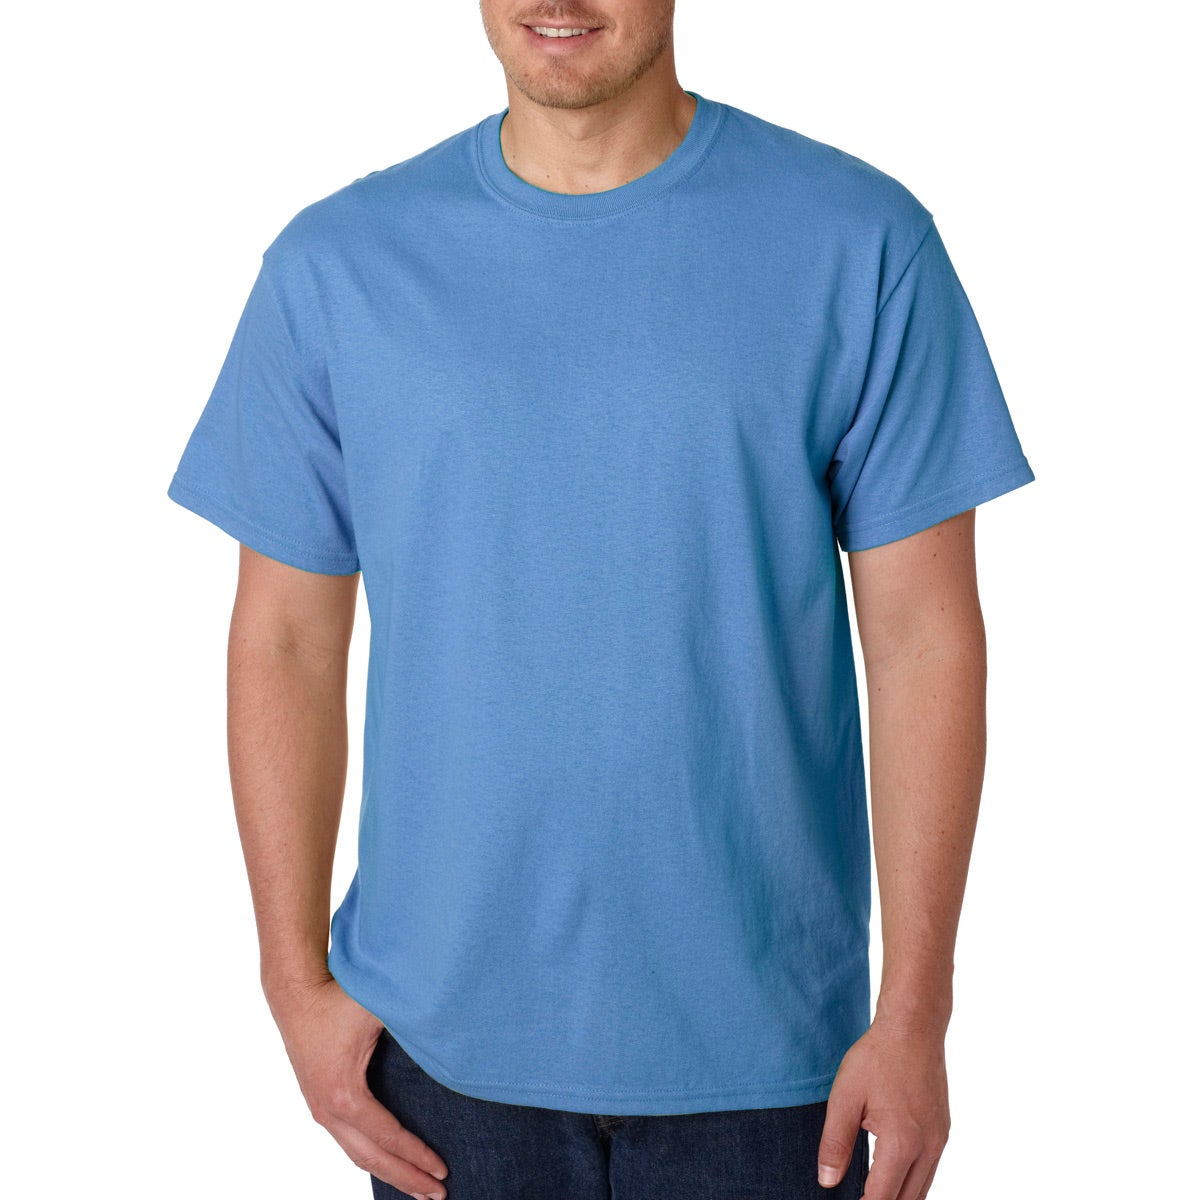 Gildan adult heavy cotton t shirt colors 100 cotton t for Custom cotton t shirts